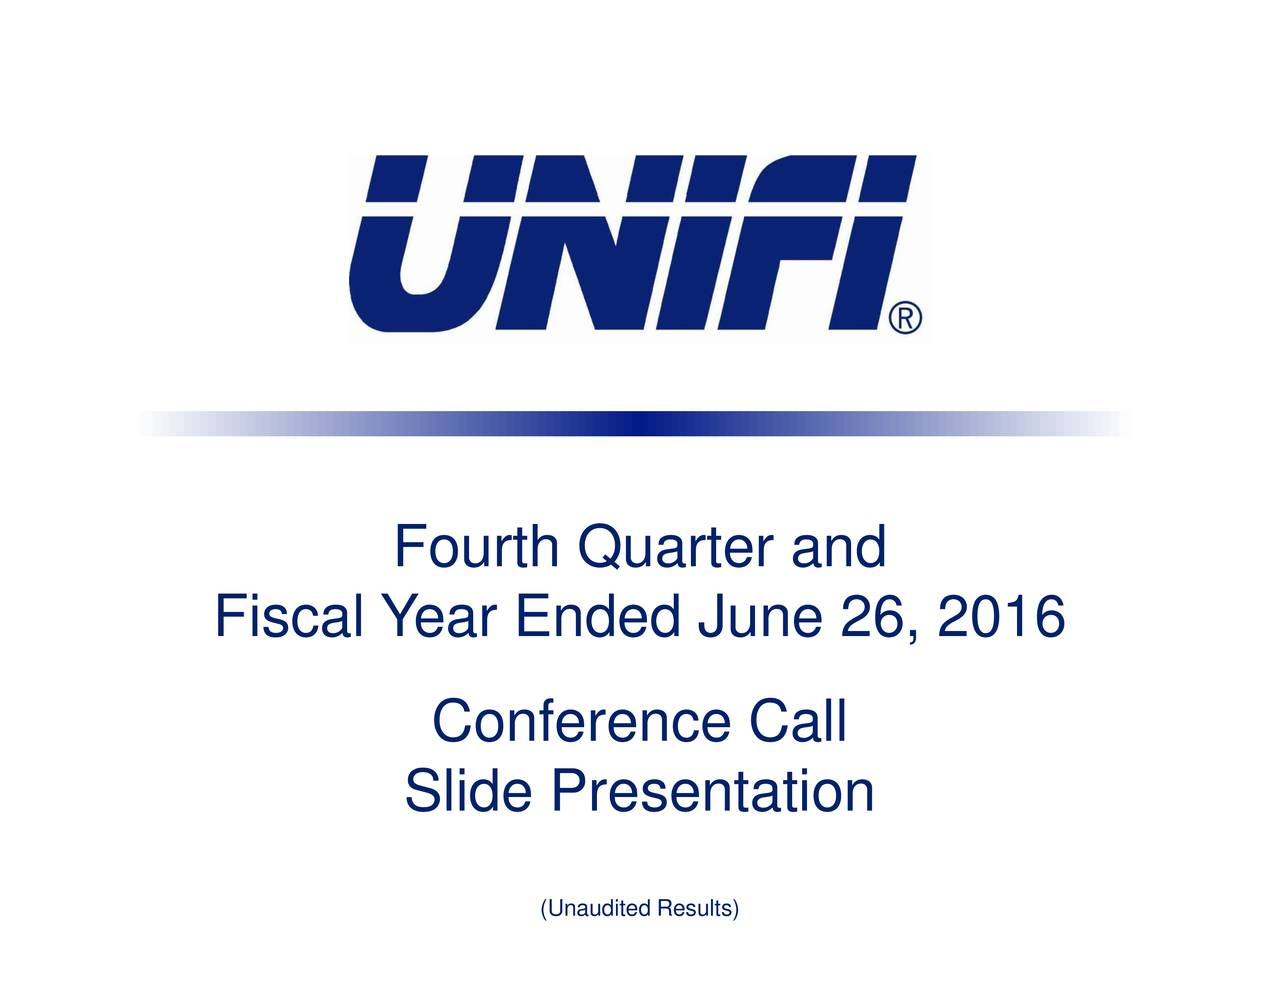 Fiscal Y ear Ended June 26, 2016 Conference Call Slide Presentation (Unaudited Results)